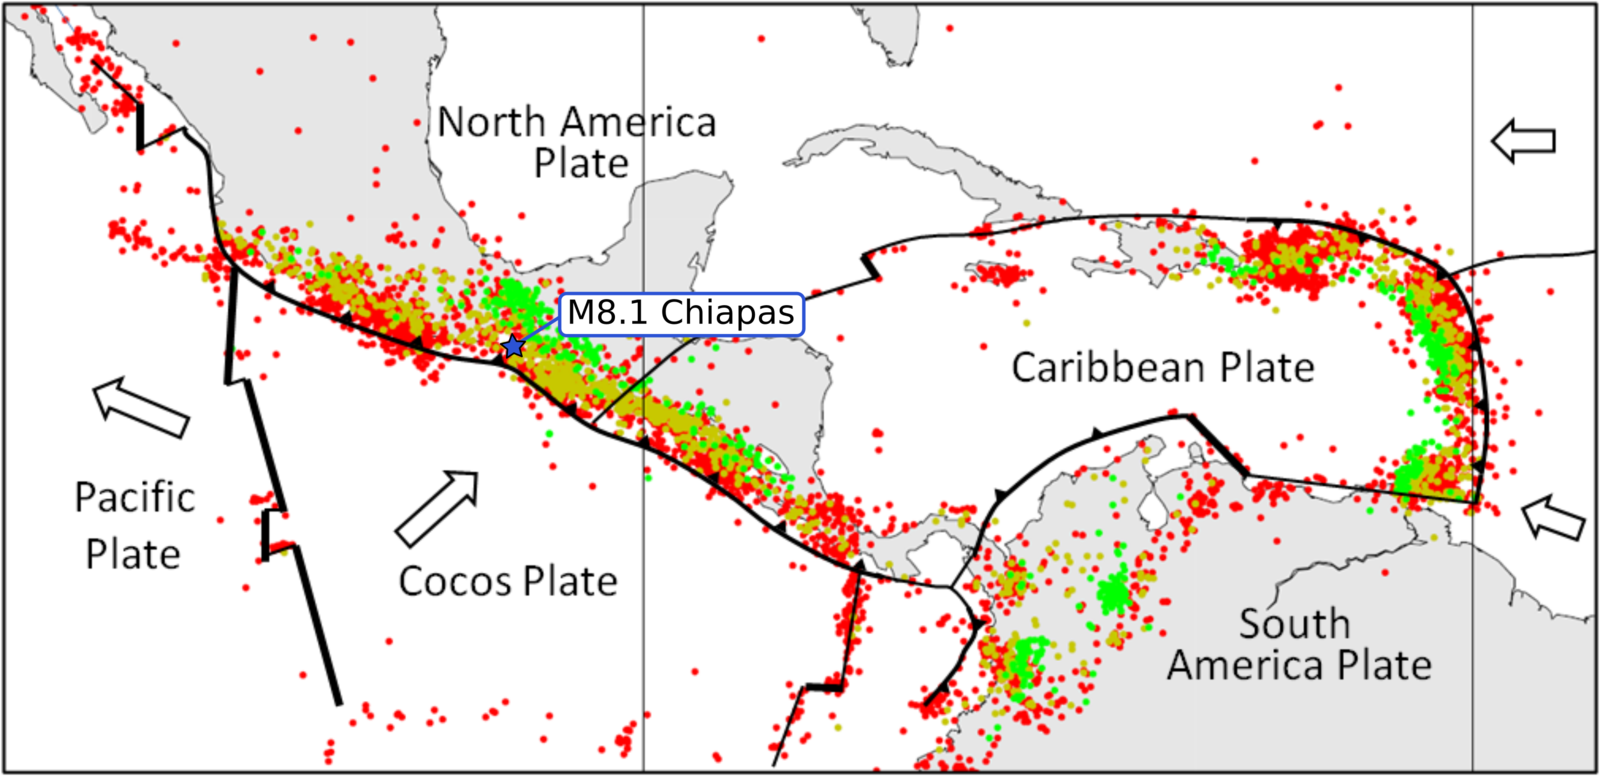 Tectonic context of the Pijijiapan earthquake - Doc.CSEM (Modified figure from Physical Geology by Steven Earle used under a CC-BY 4.0 international license).